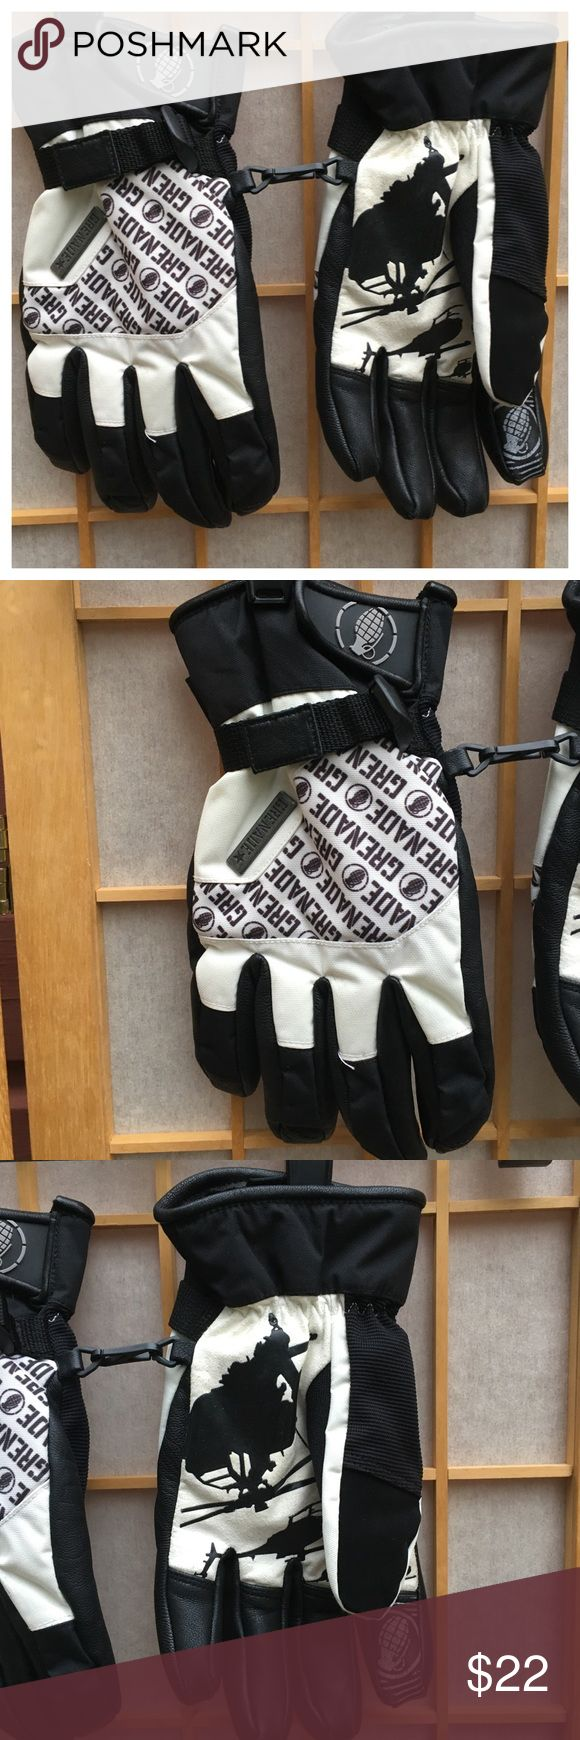 Grenade Cold Weather Snow Gloves SZ XL Black & White grenade snow gloves...adjustable band...velcro wrist closure...SZ XL...lovely used condition... Grenade Accessories Gloves